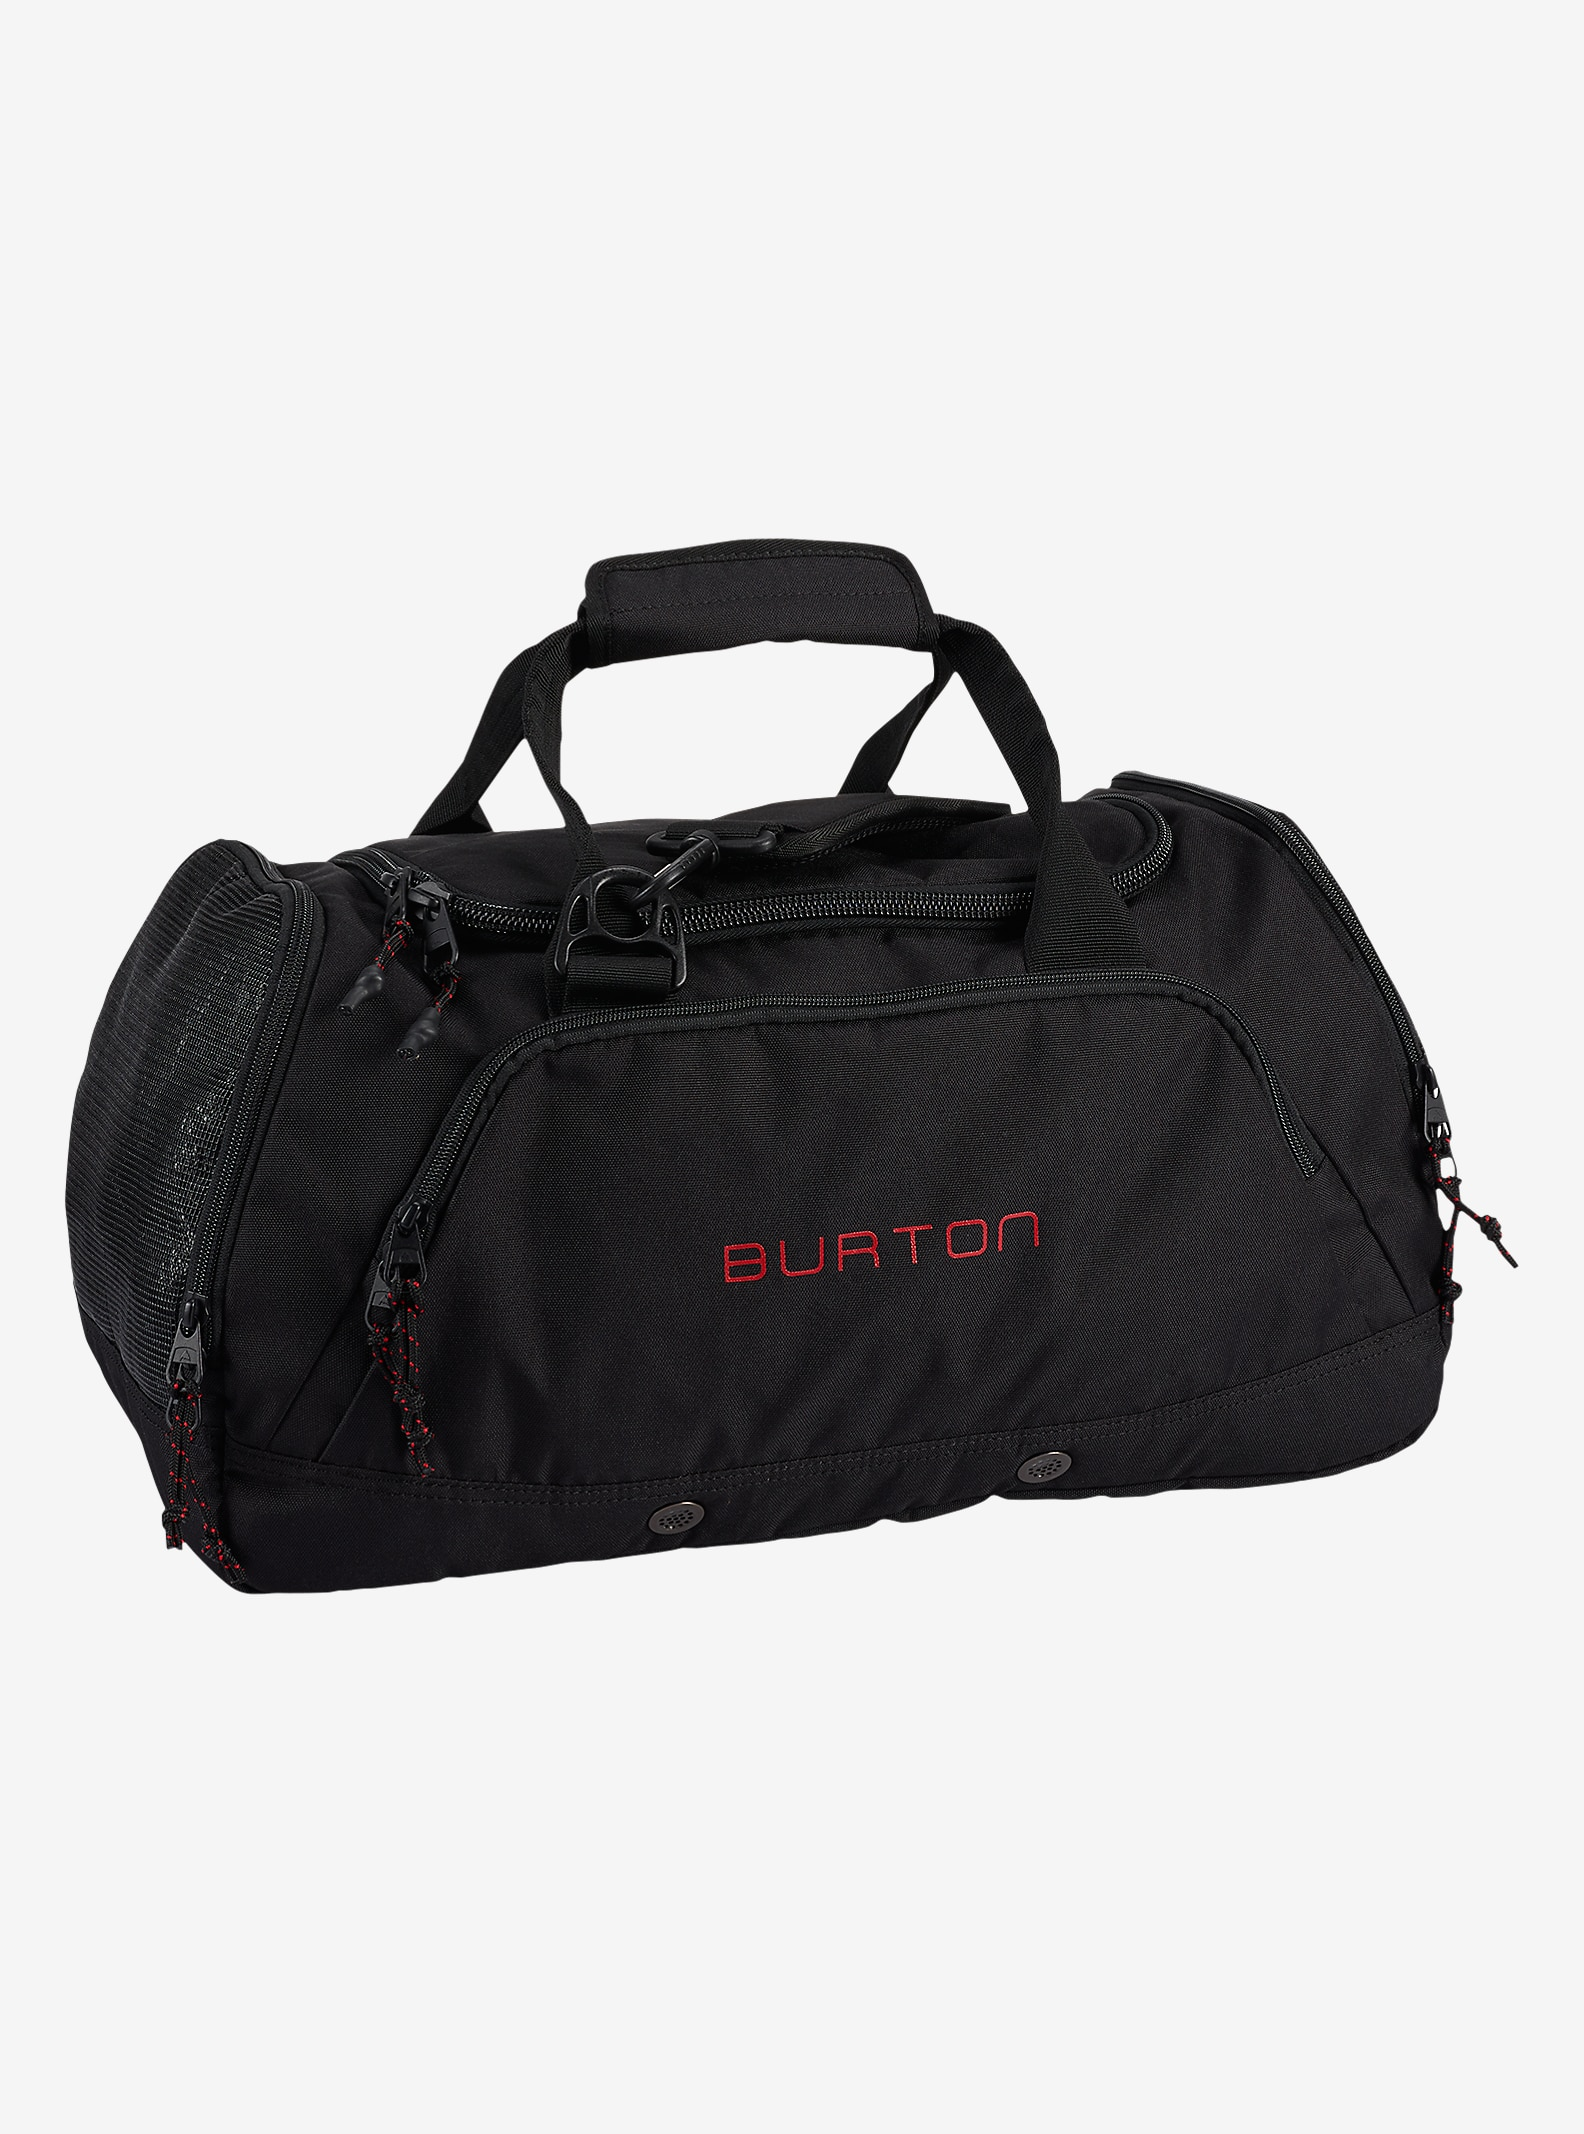 Burton Boothaus Bag 2.0 Medium shown in True Black